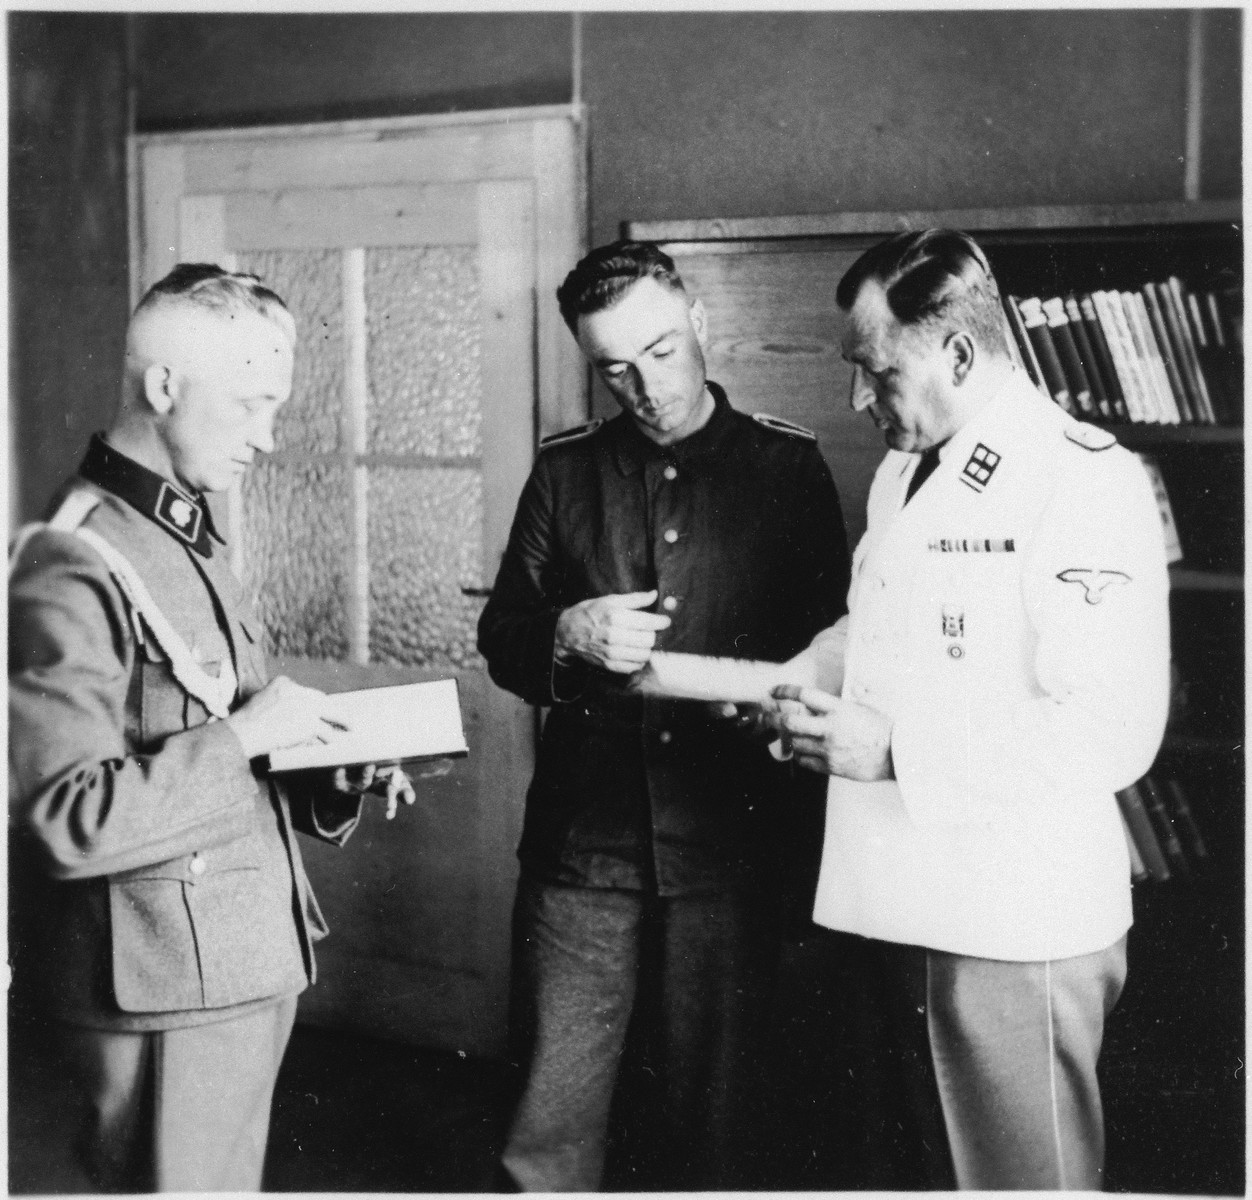 The commander of Gross-Rosen, SS-Obersturmbannfuehrer Arthur Roedl reads from book in the company of two other SS men in his office.  Pictured on the right is his adjutant Untersturmfuehrer Kuno Schramm.